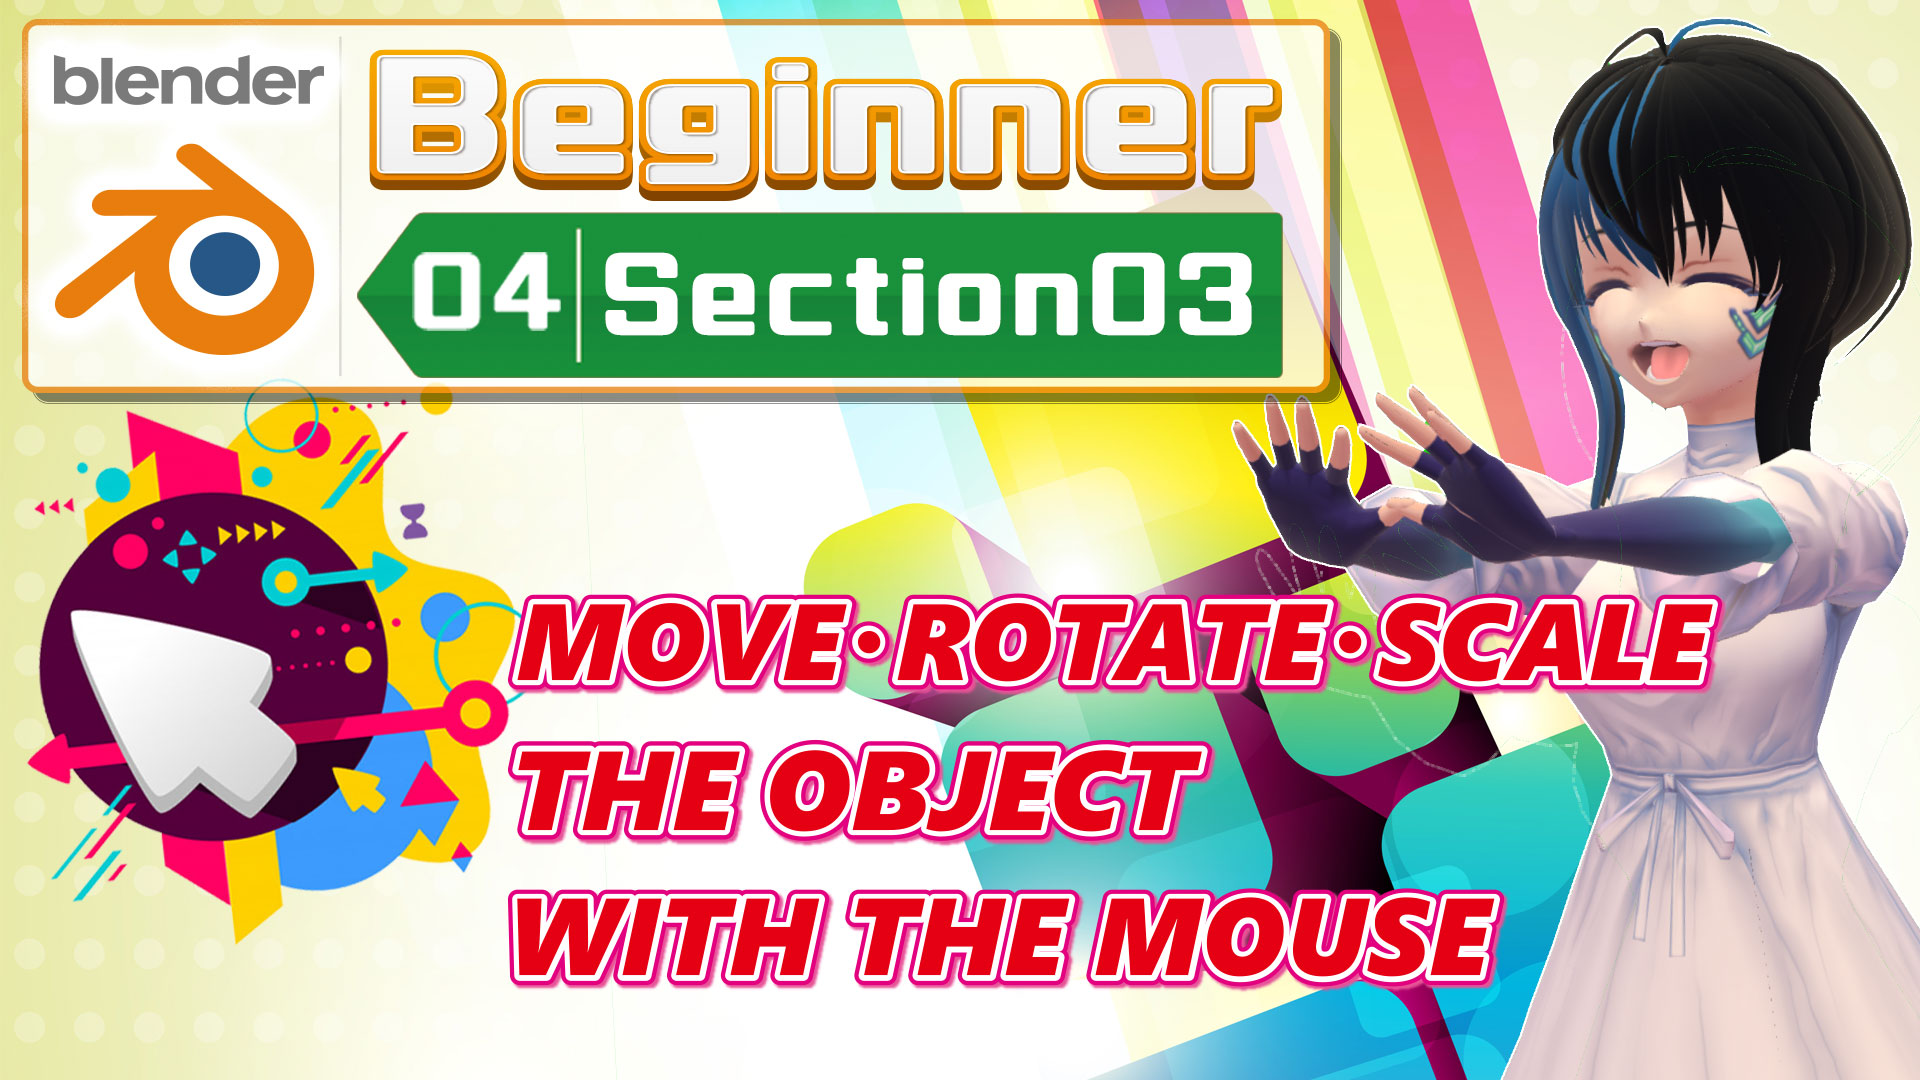 MOVE/ROTATE/SCALE THE OBJECT WITH THE MOUSE